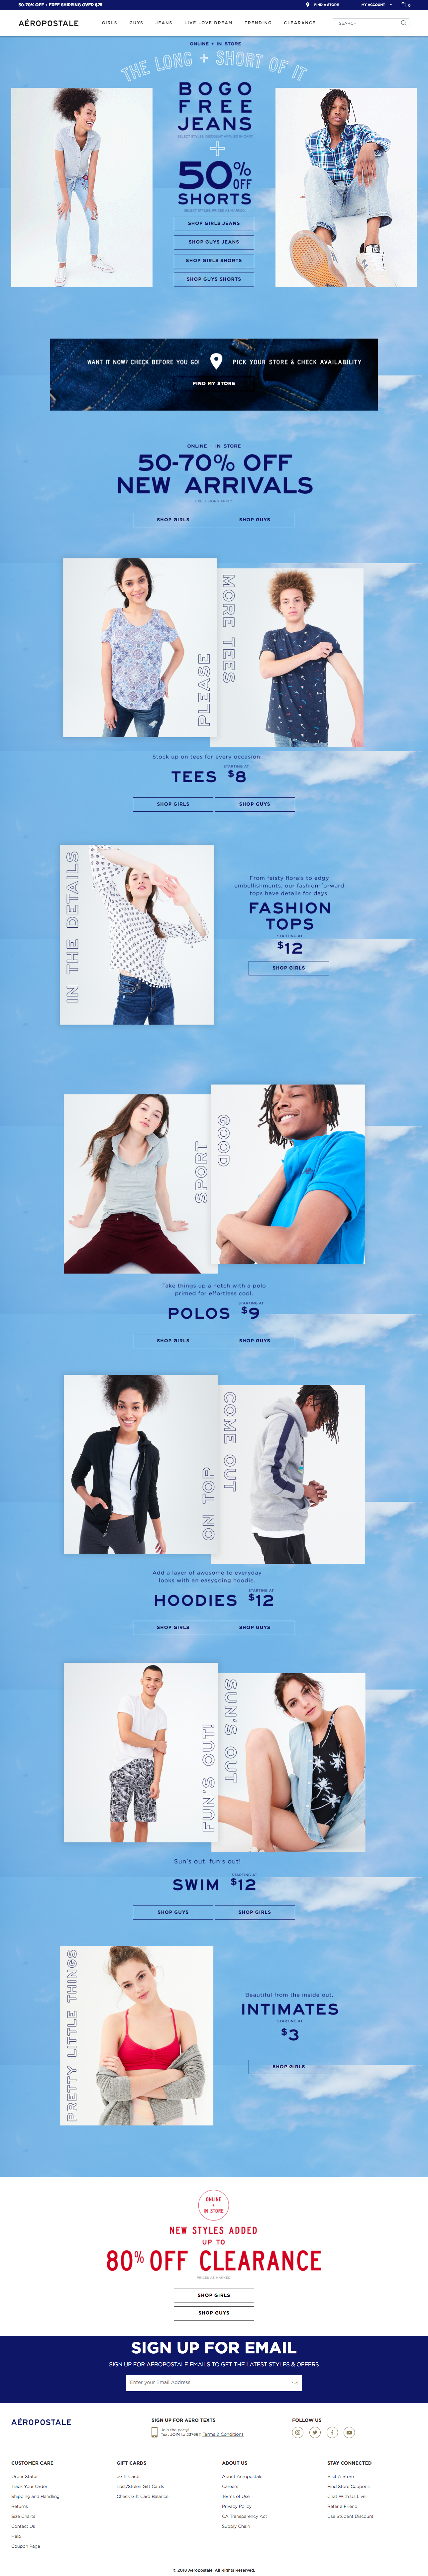 Aeropostale March 18 Homepage.png